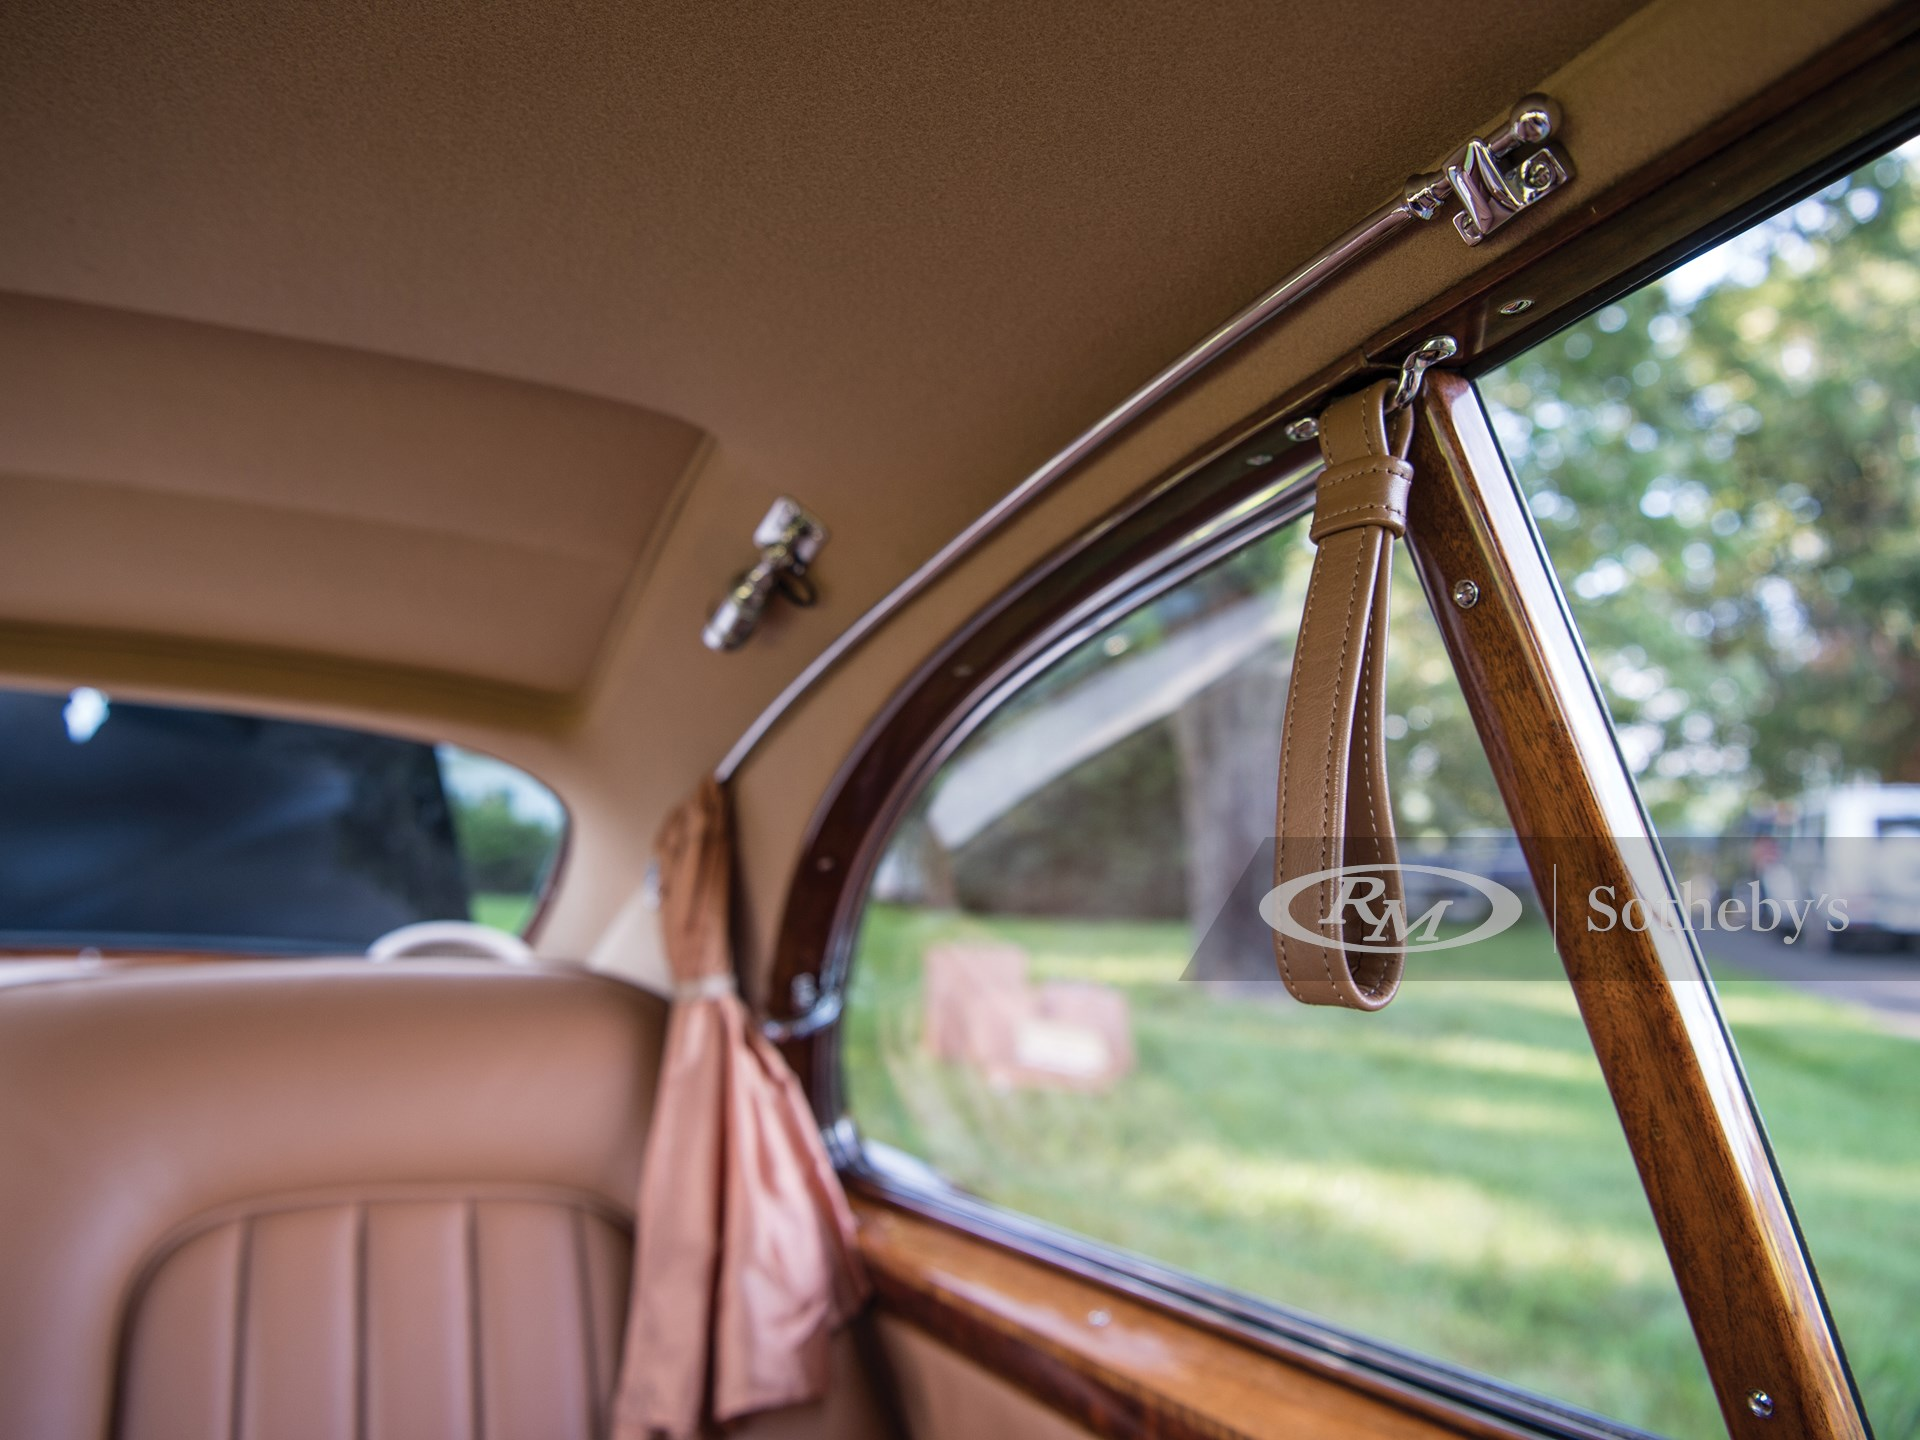 1958 Bentley S1 Continental Fastback Sports Saloon by H.J. Mulliner -